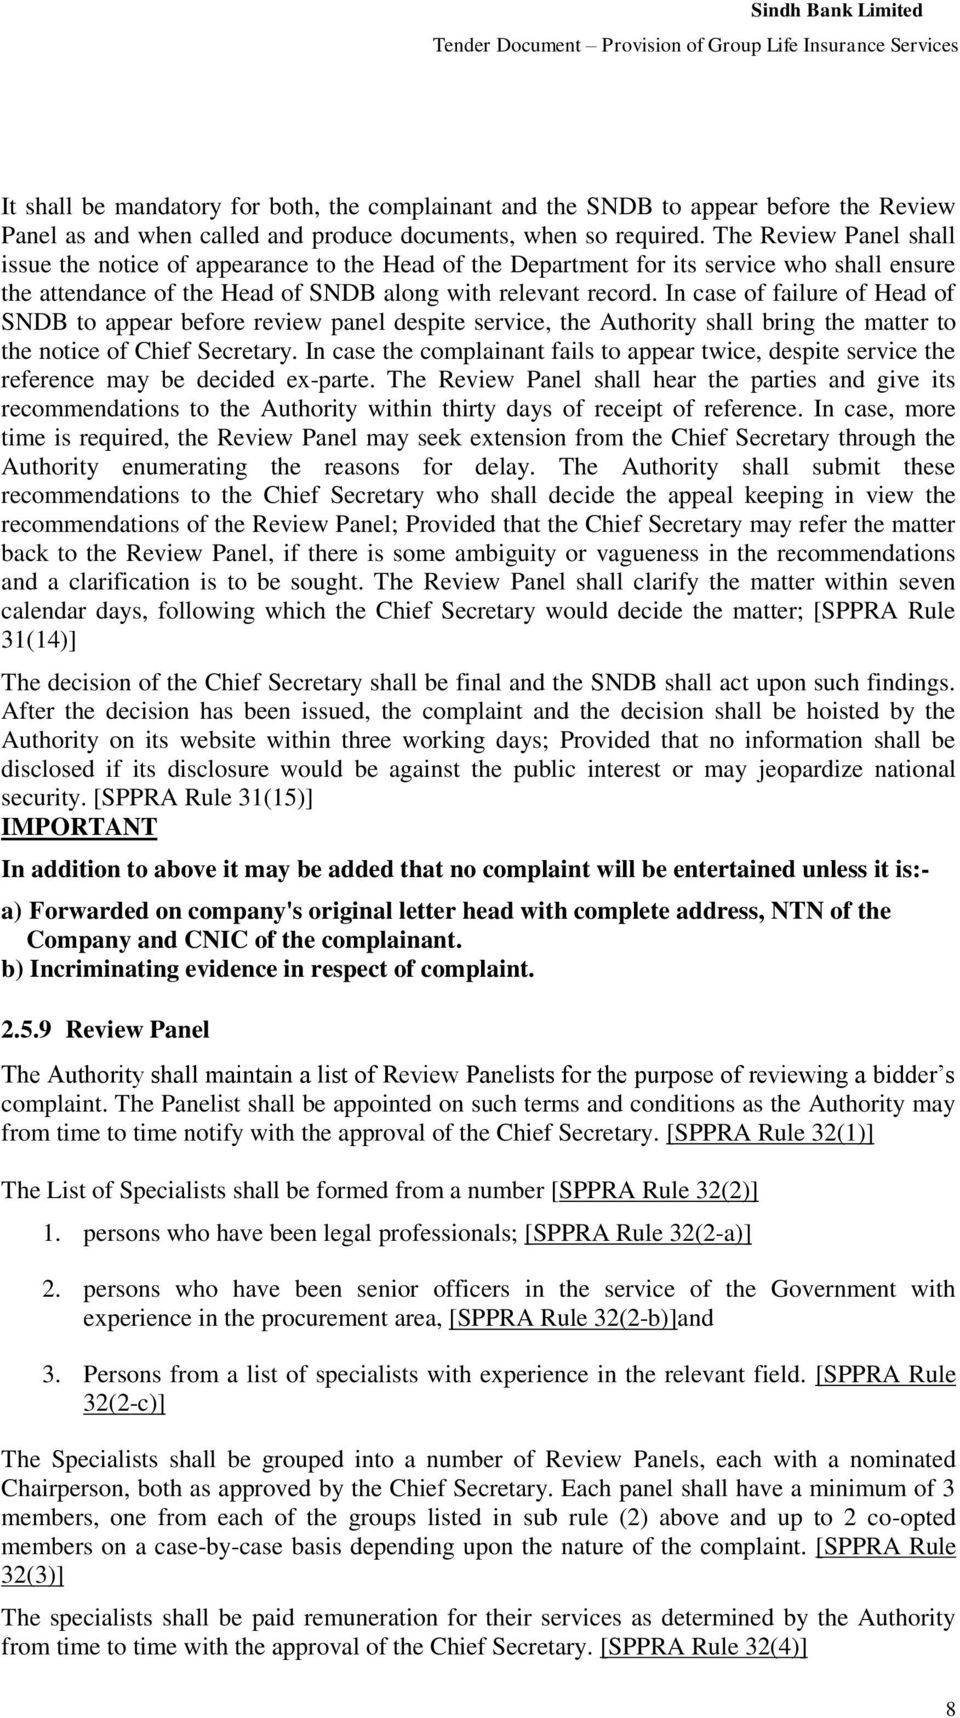 In cas of failur of Had of SNB to appar bfor rviw panl dspit srvic, th Authority shall bring th mattr to th notic of Chif Scrtary.